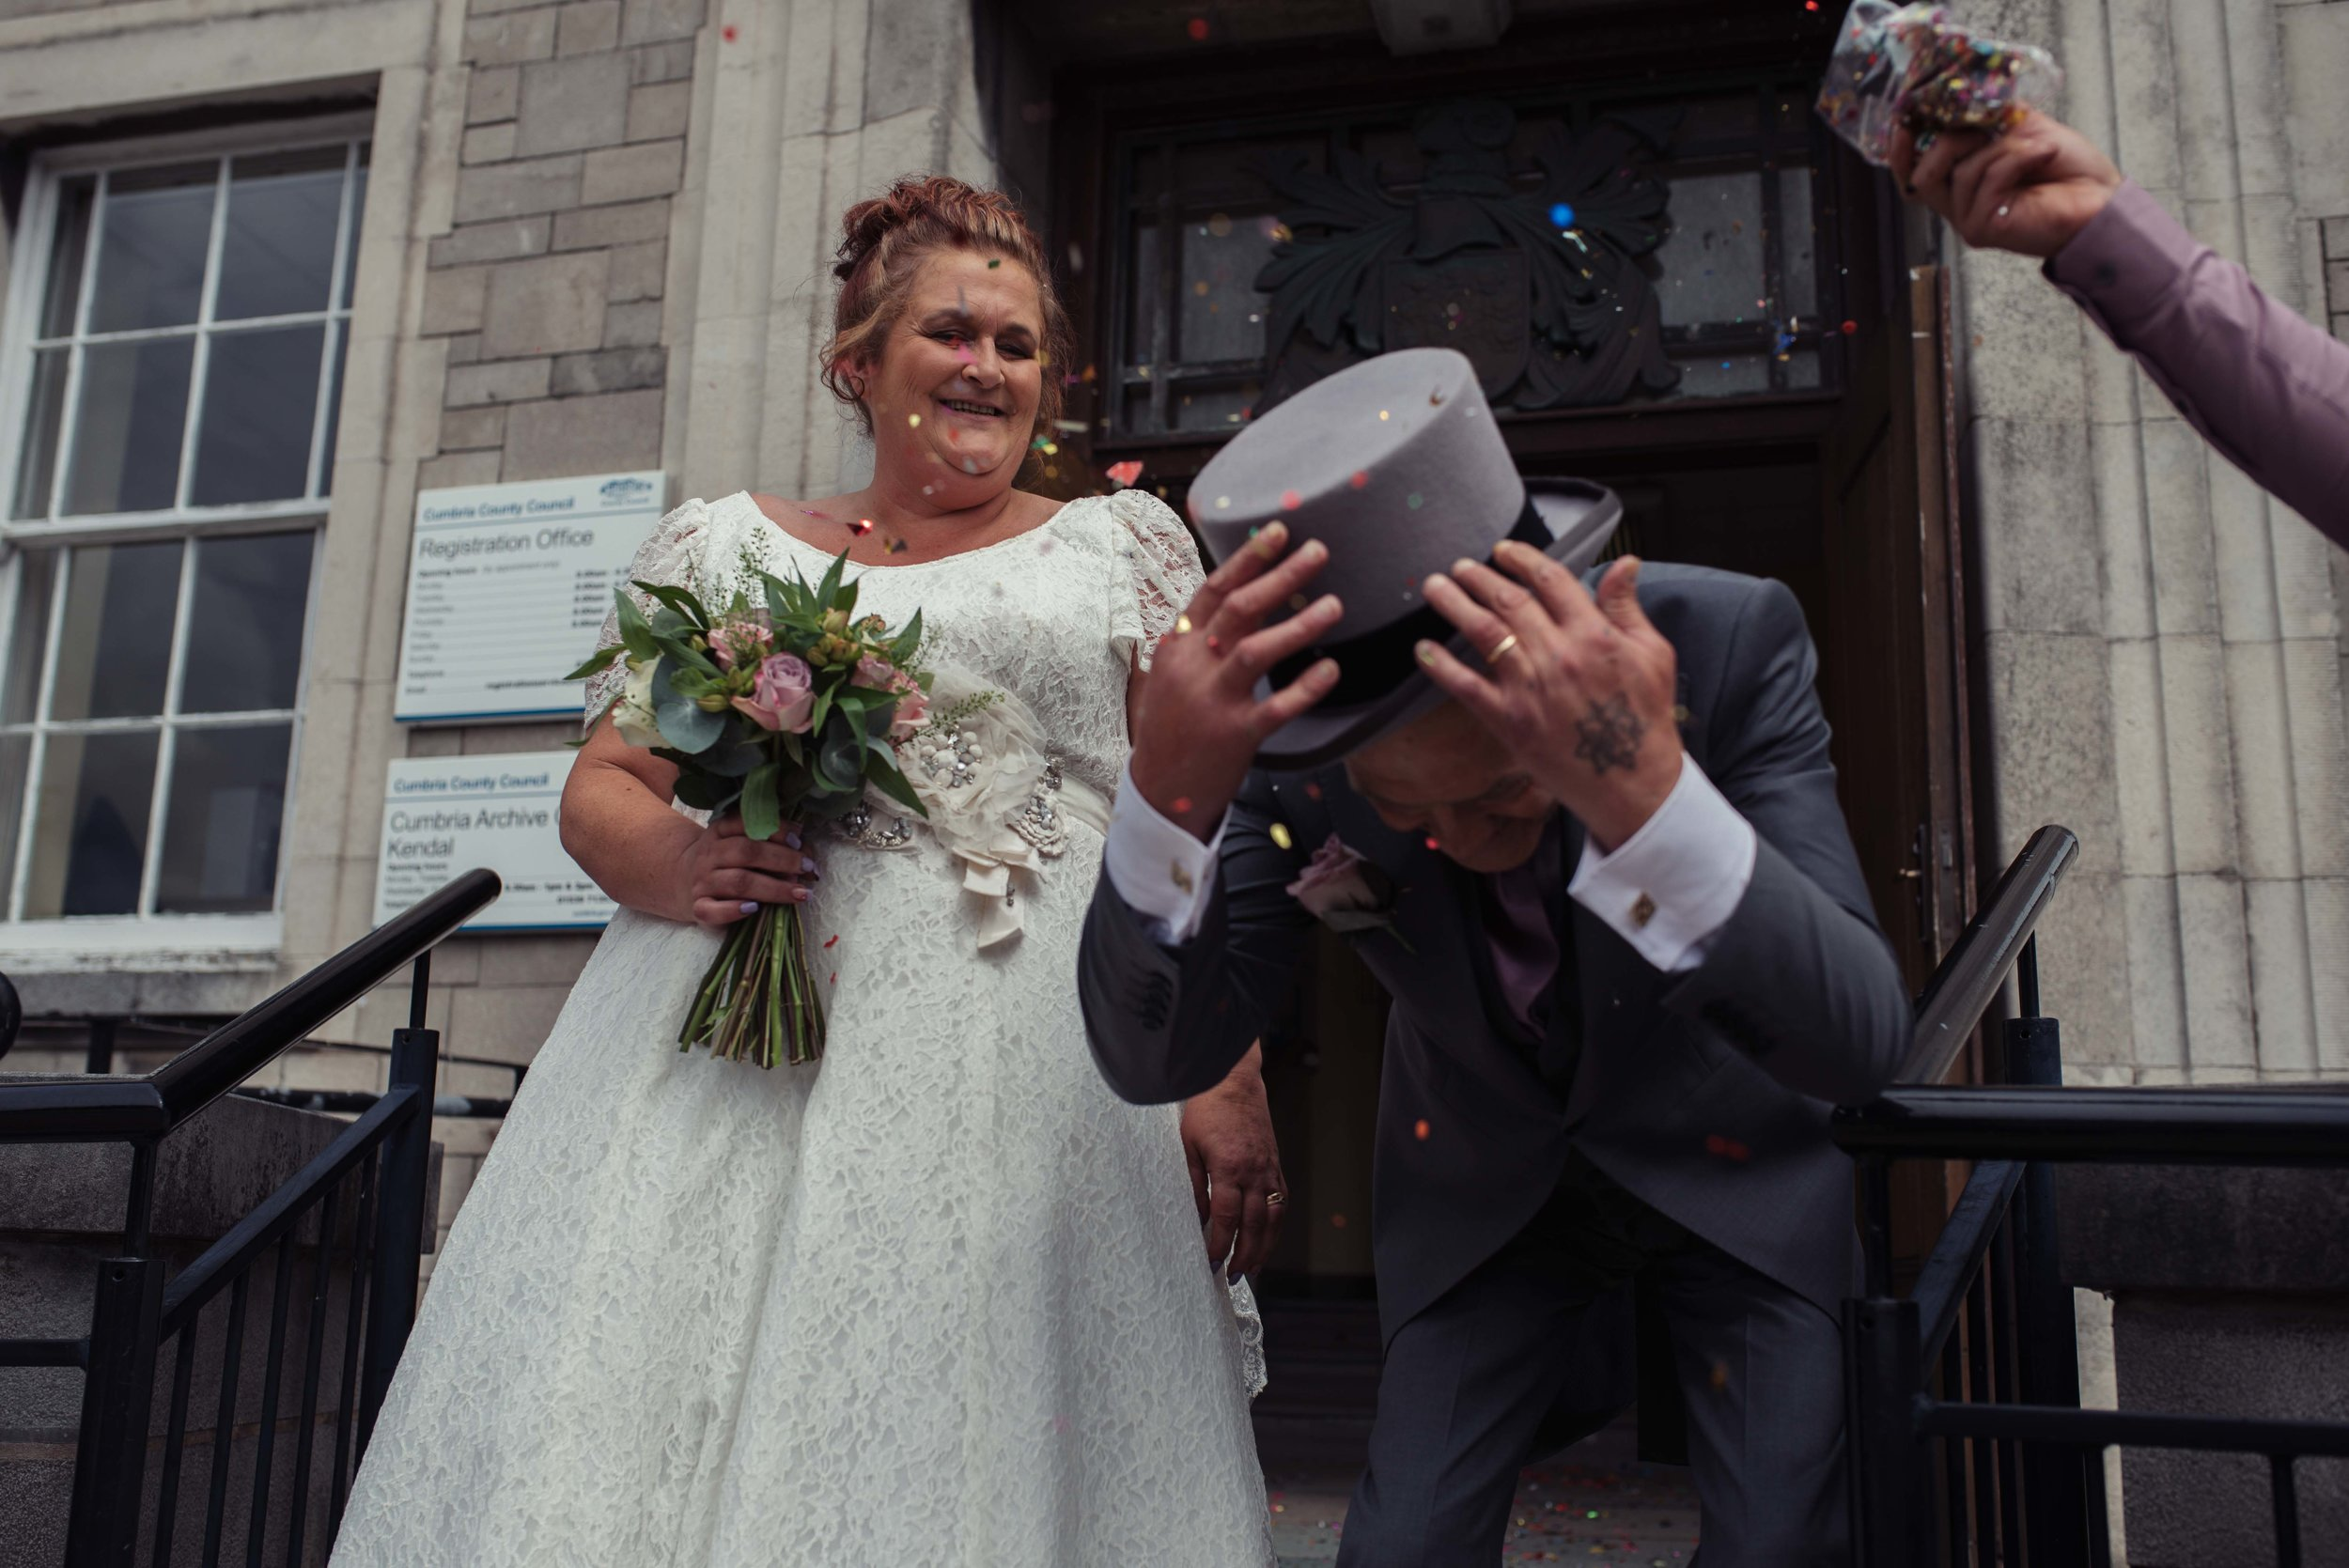 Confetti almost knocks the grooms hat off outside the cumbria wedding venue